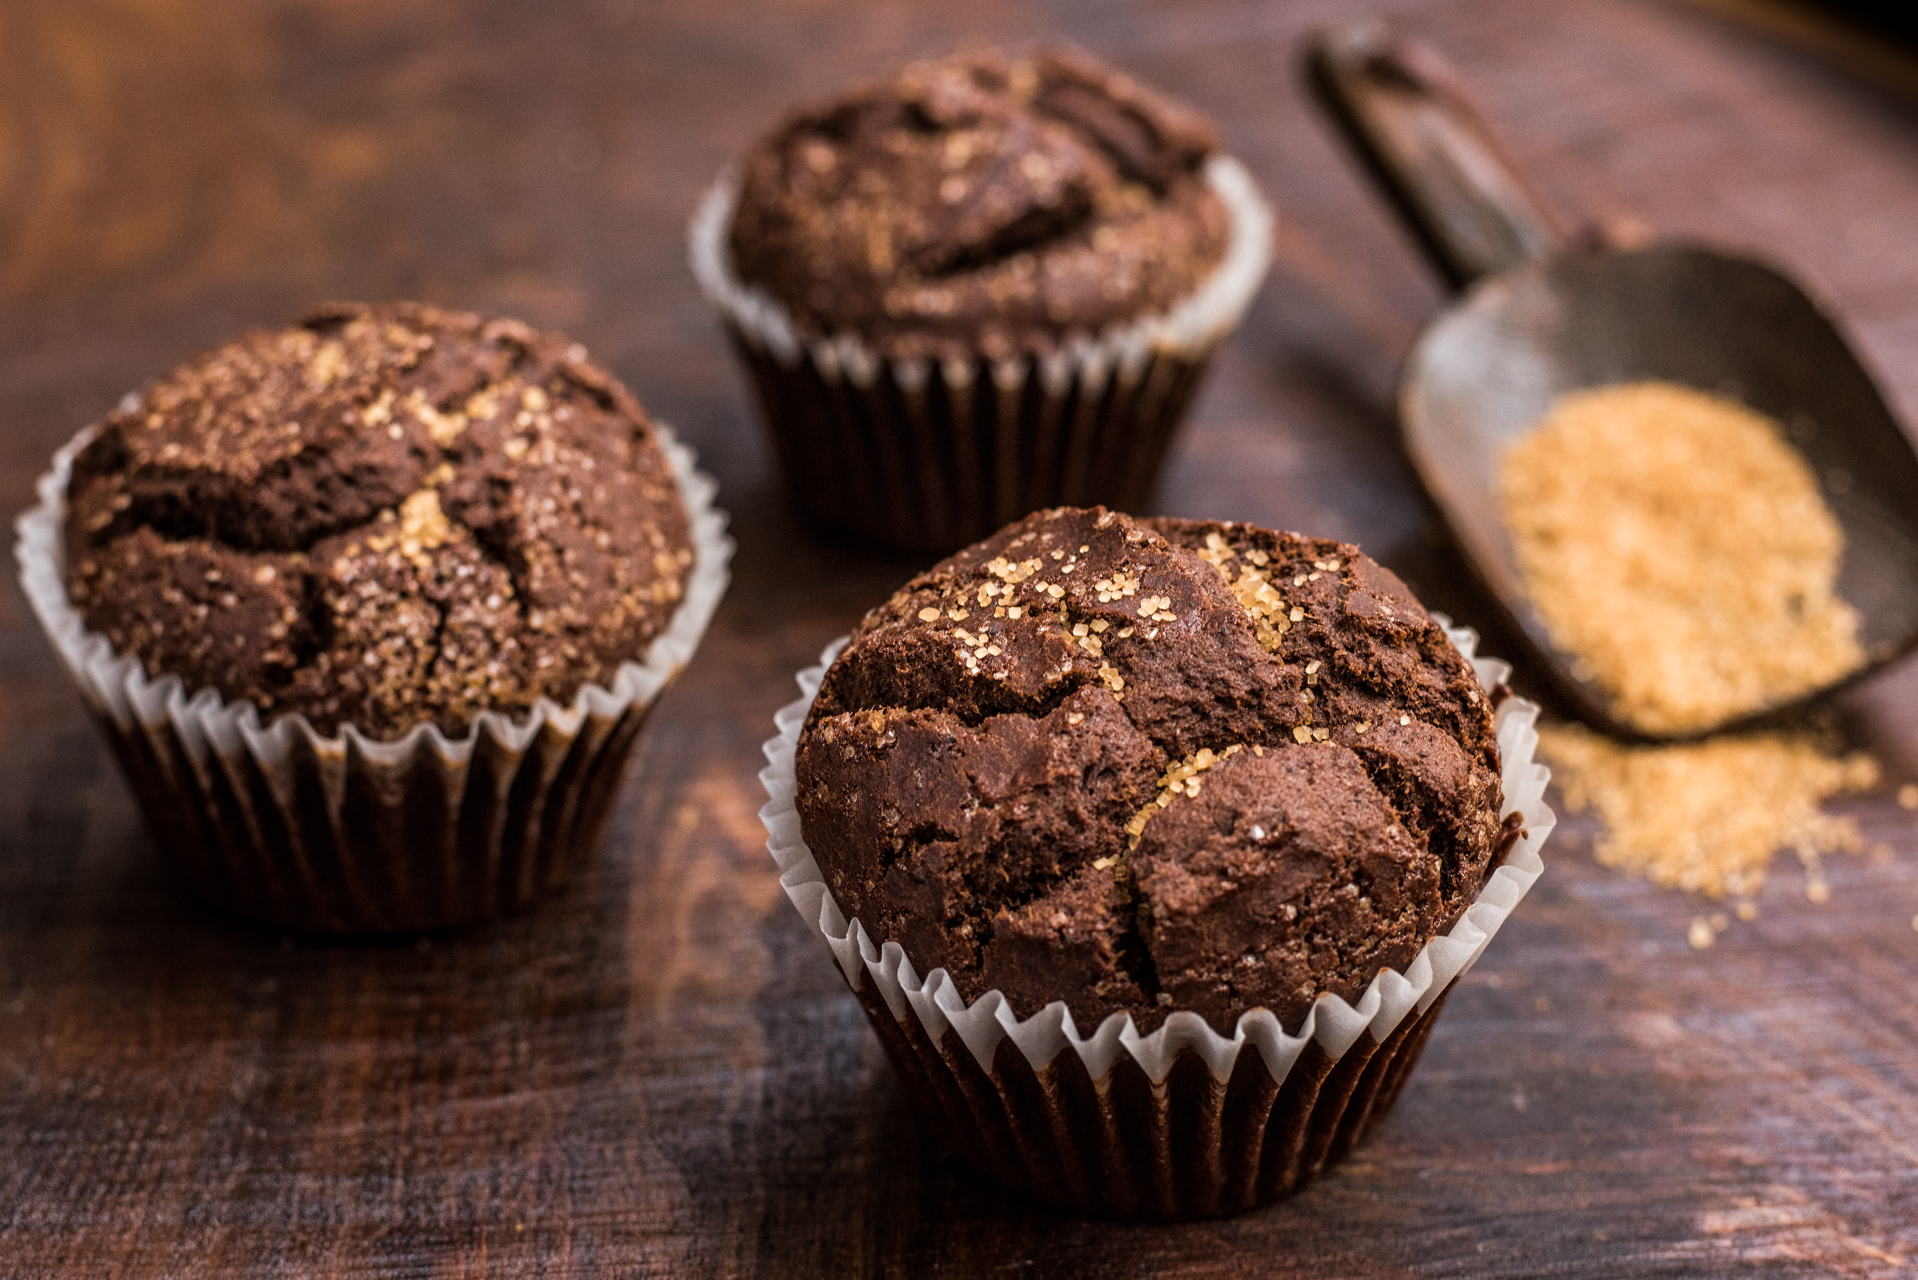 Copy of Gluten-free Chocolate Earl Grey Muffin